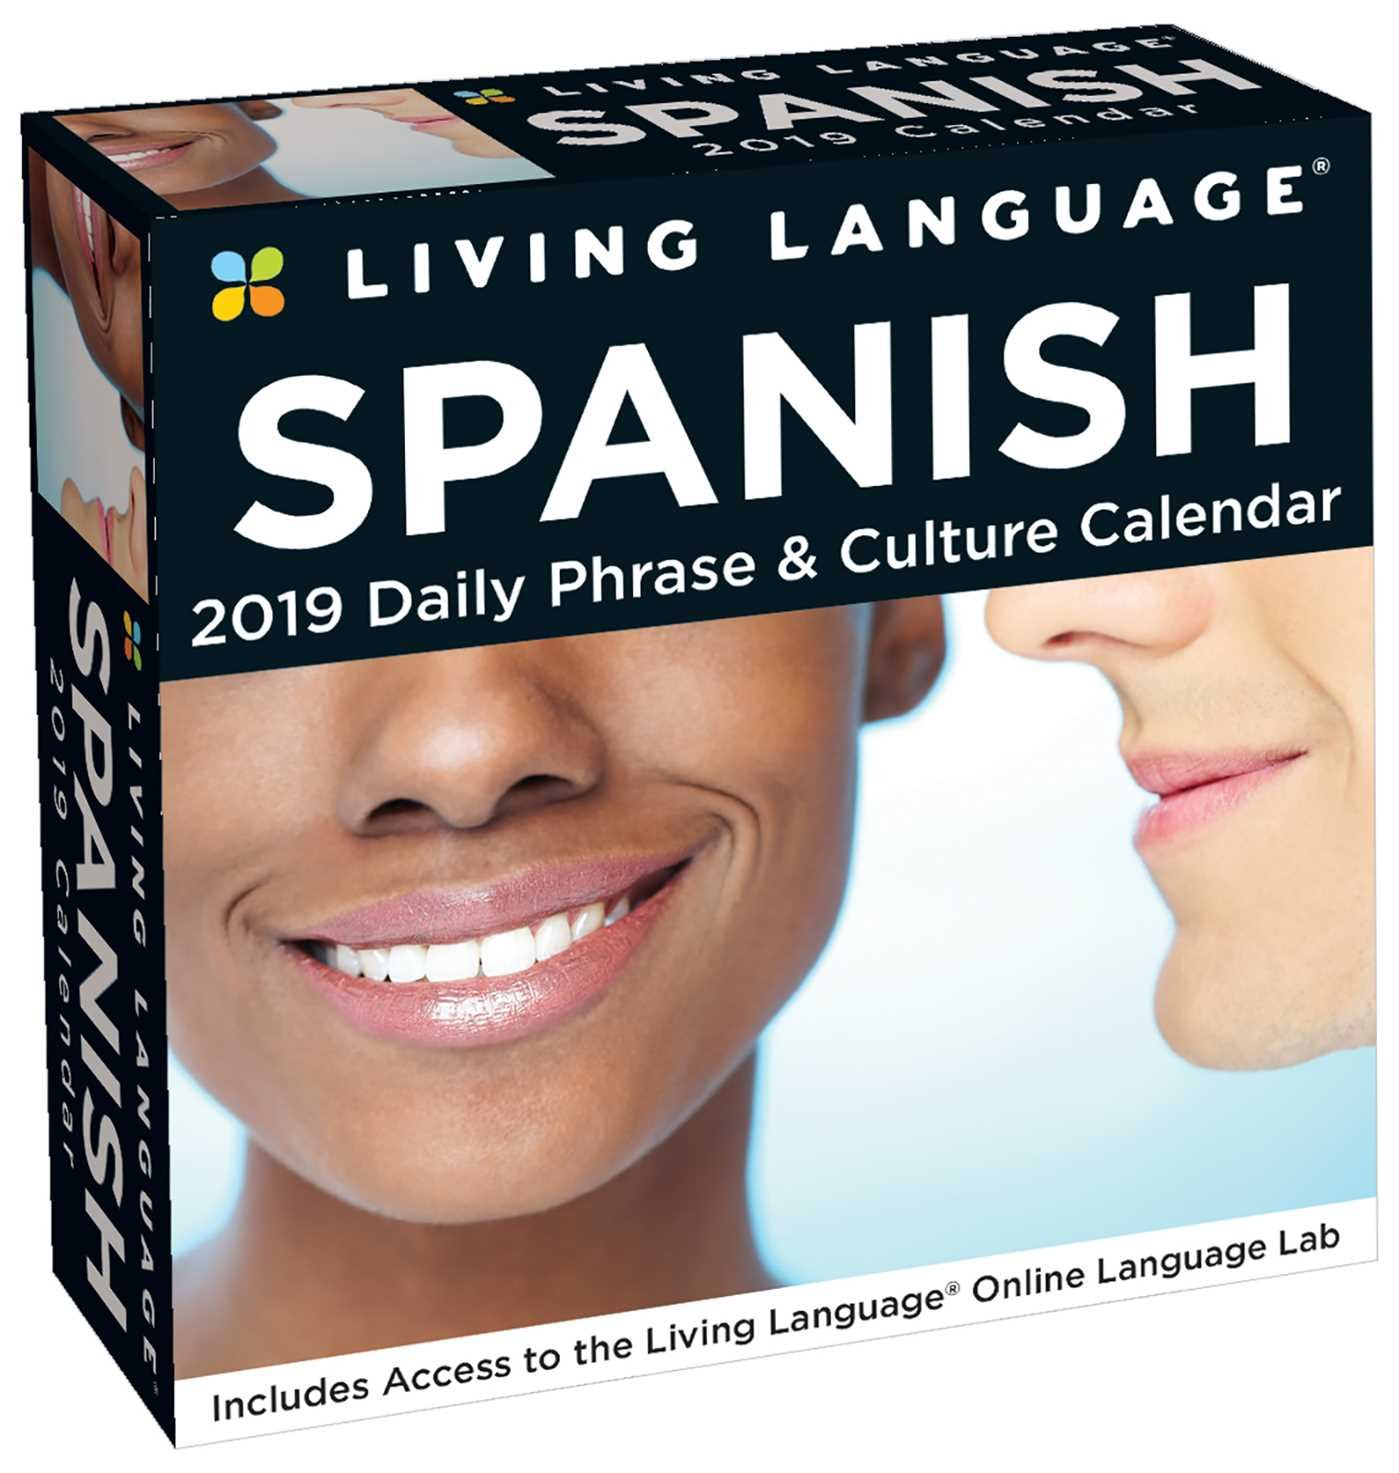 Living Language: Spanish 2019 Day-to-Day Calendar Calendar – Day to Day Calendar, Desk Calendar Random House Direct Andrews McMeel Publishing 1449491812 Calendars